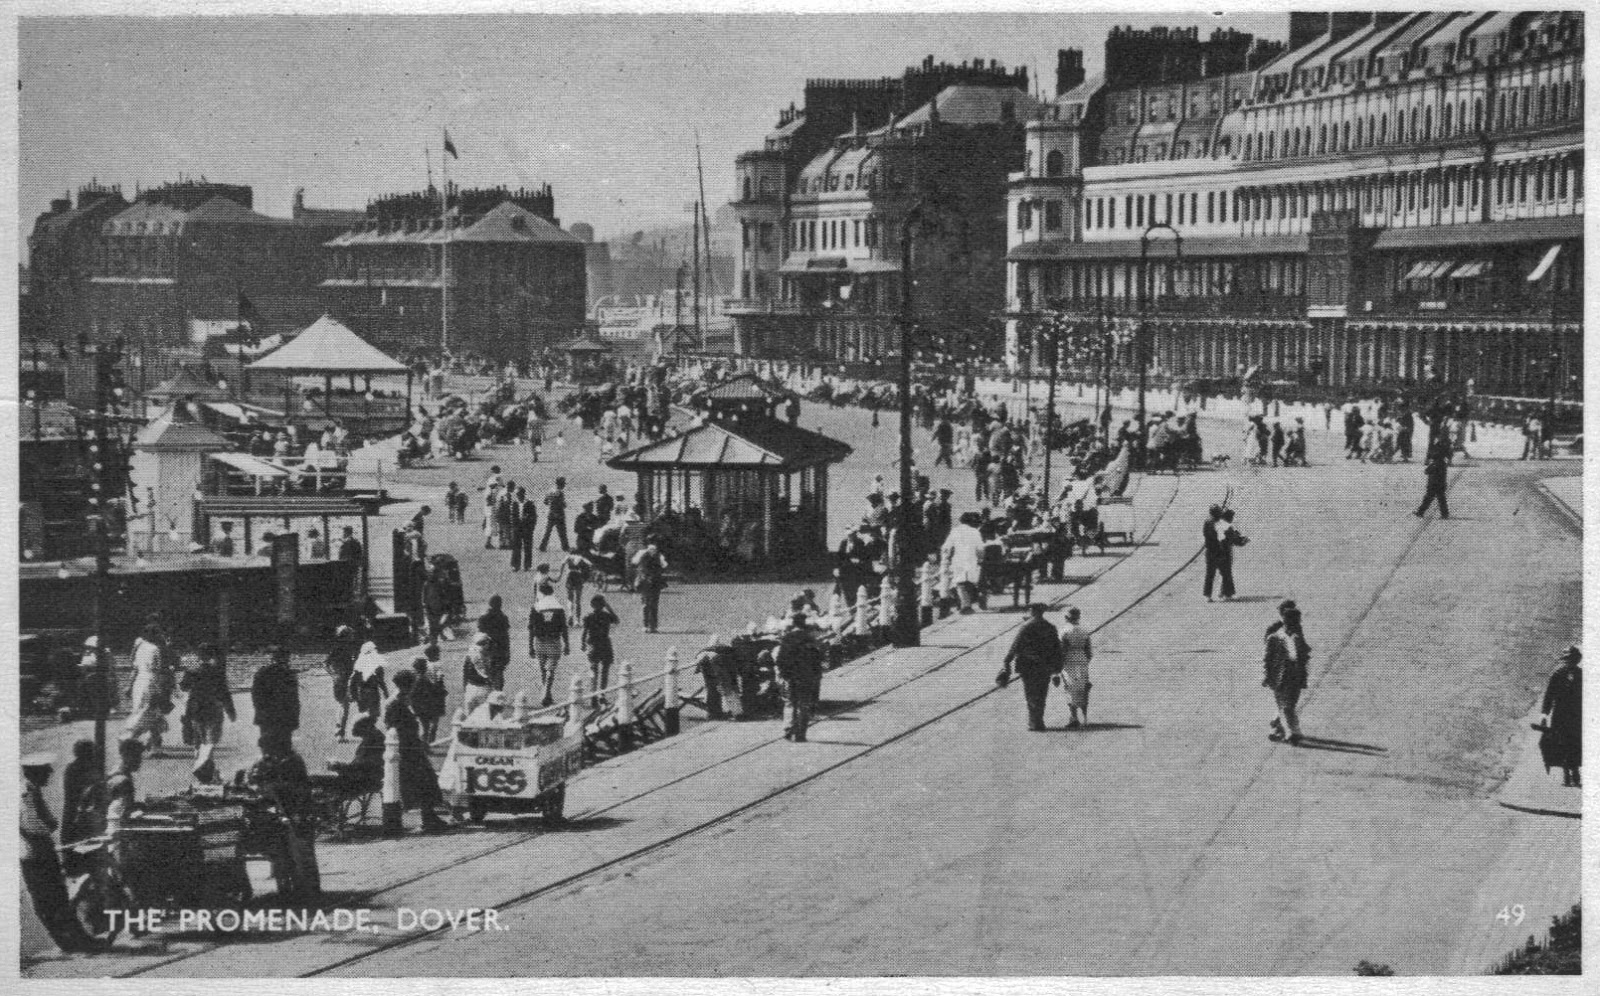 1950s Photo Of The Promenade, Dover